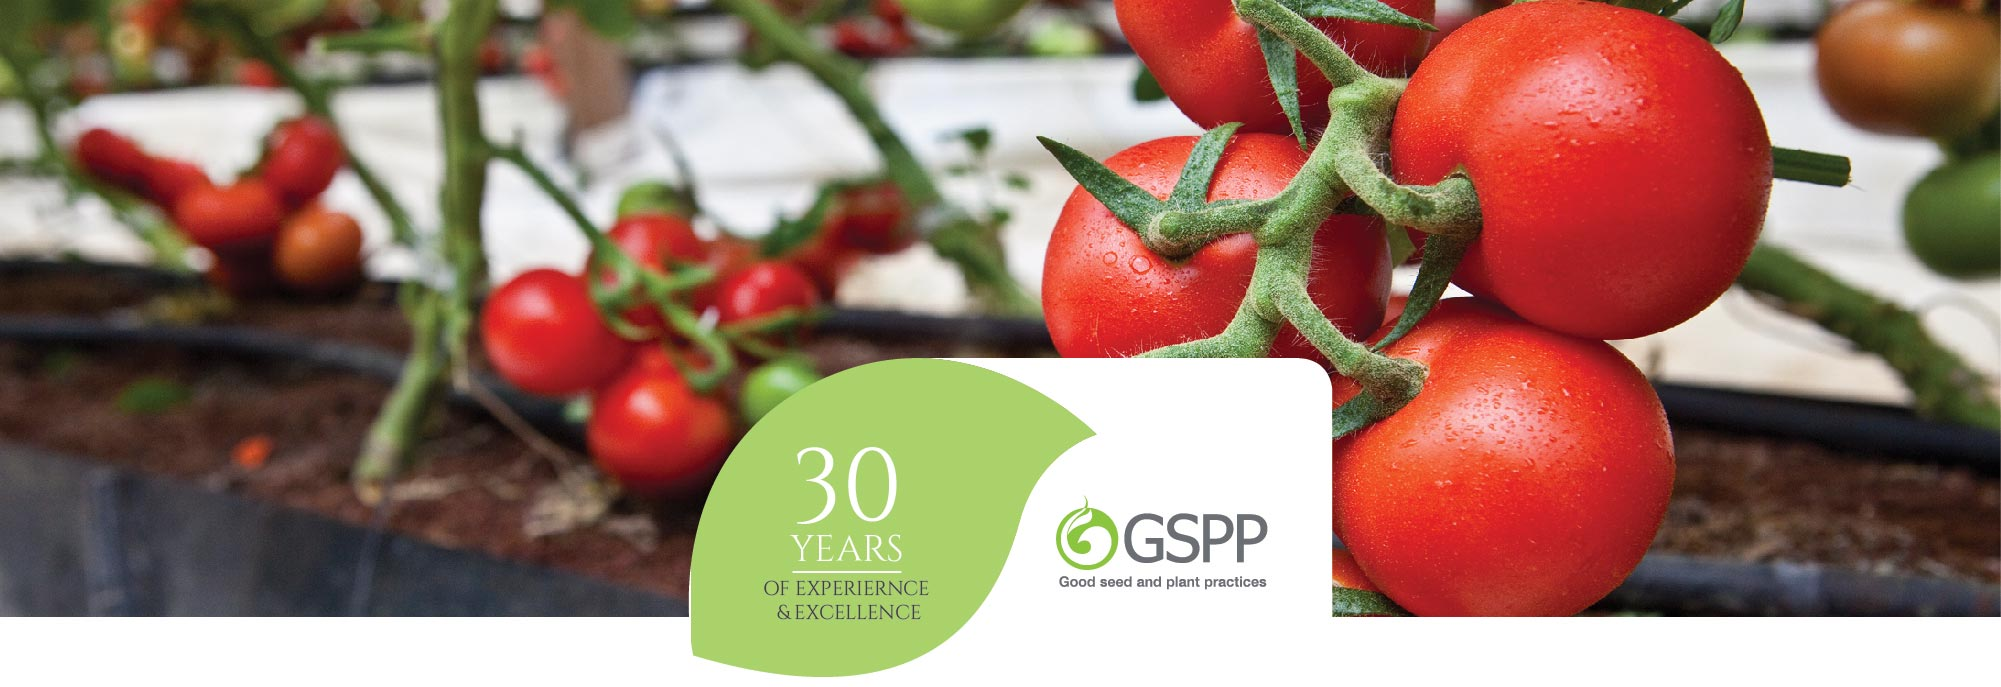 YAFFE SEEDS PRODUCTION - GSPP